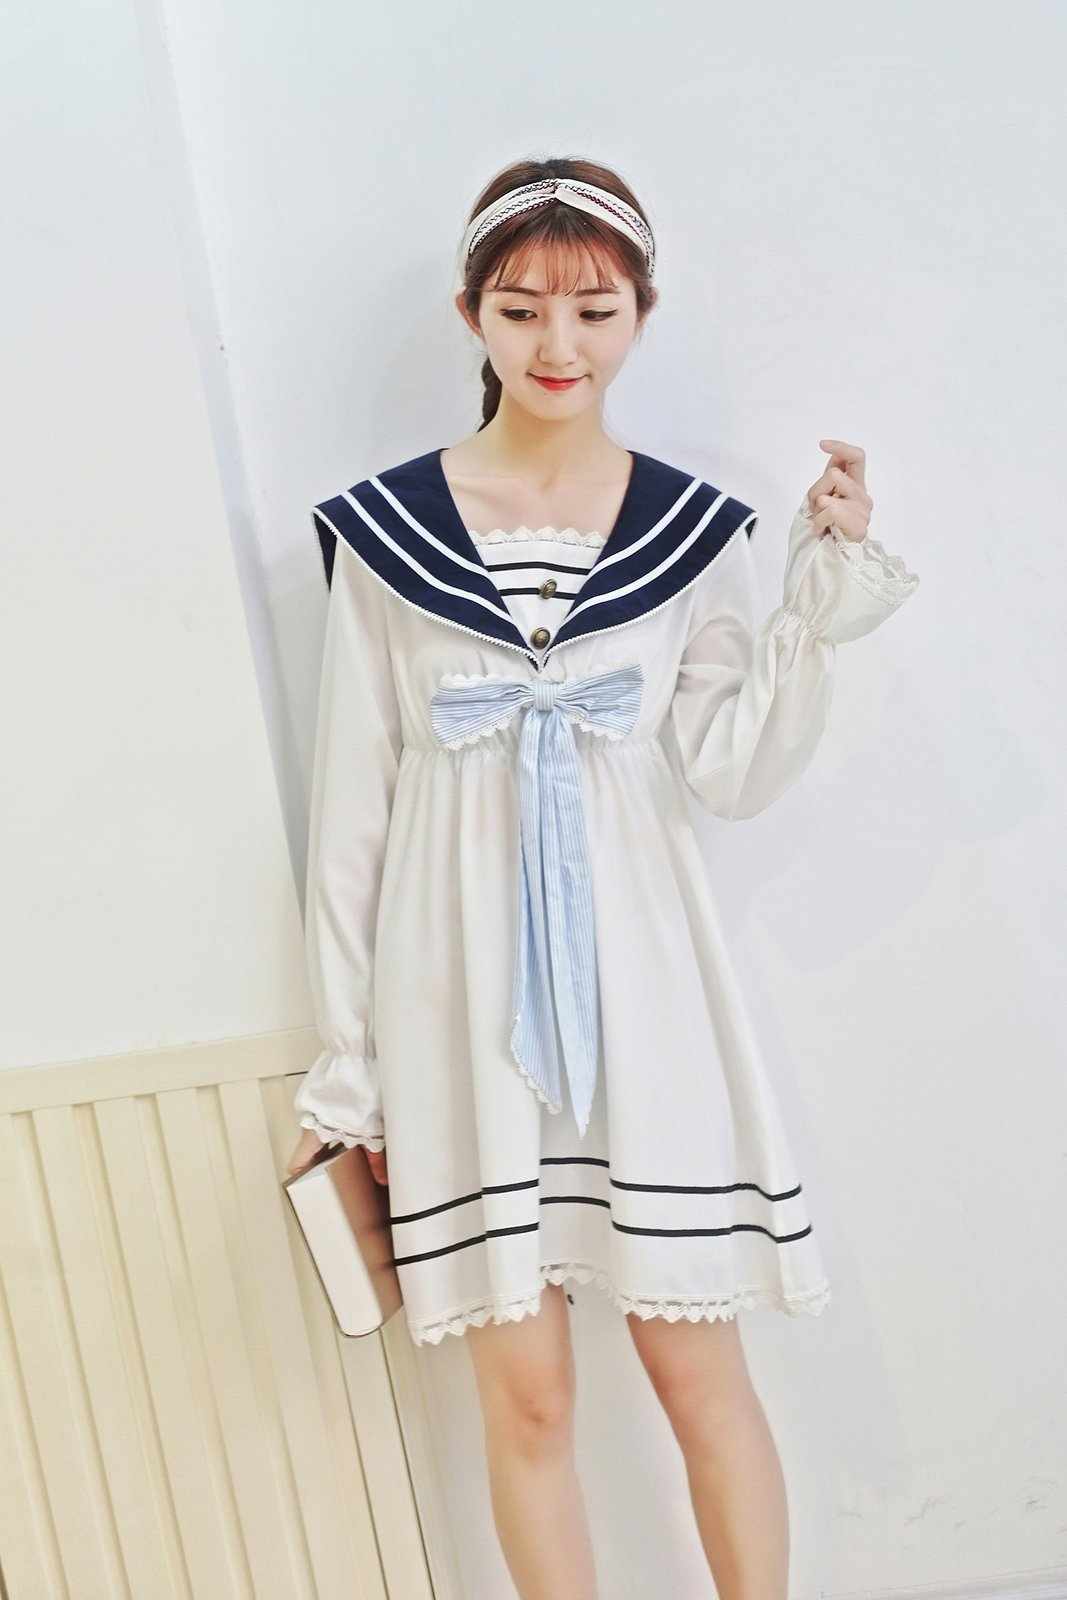 Lemail Girls Sailor School Uniform Chiffon Japanese Long Sleeve Pleated Mini Dress Blue 3XL by Lemail wig (Image #4)